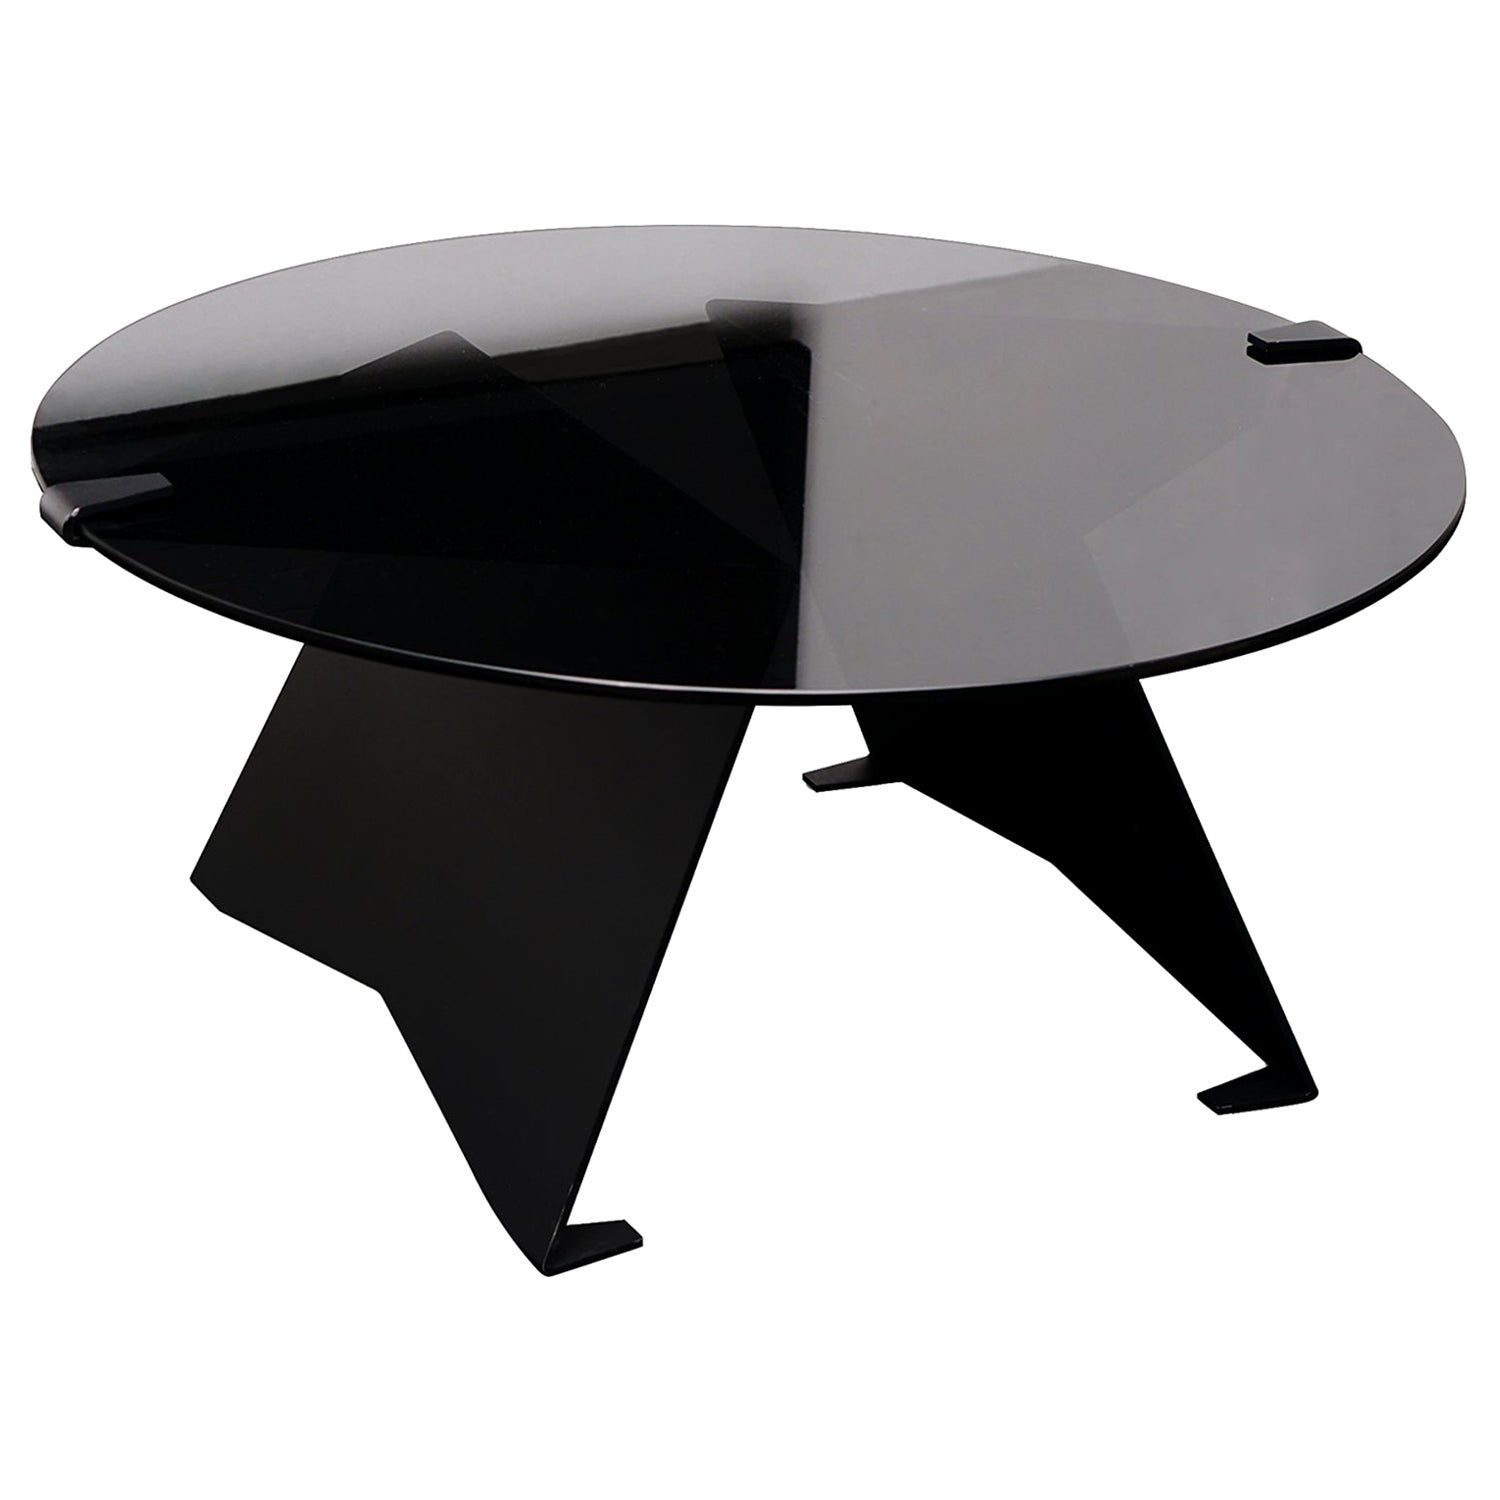 Transparent Black Glass and Polished Stainless Steel Brass M-Table by ATRA